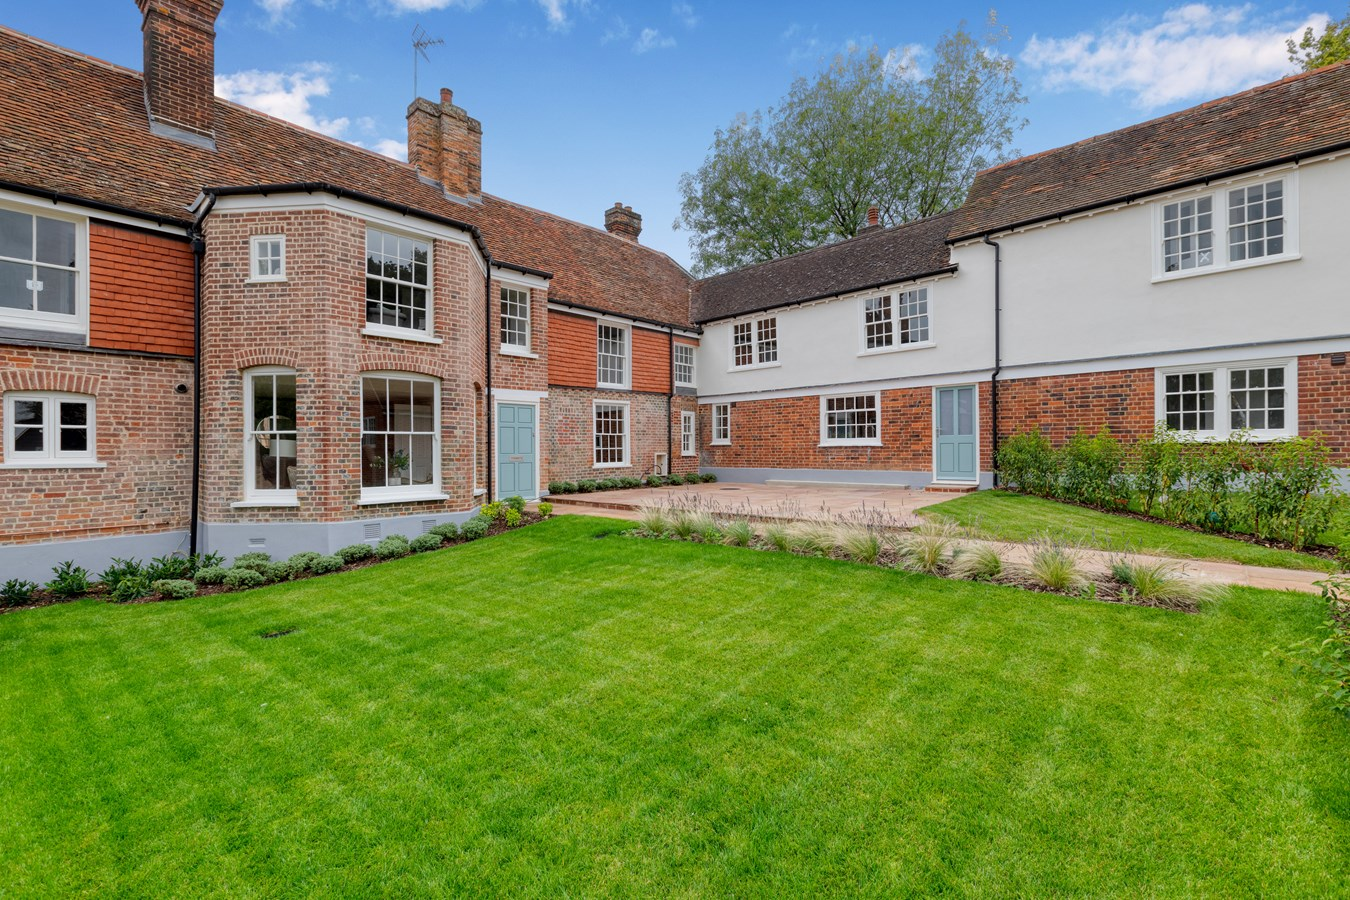 converted renovated terraced old English farmhouse